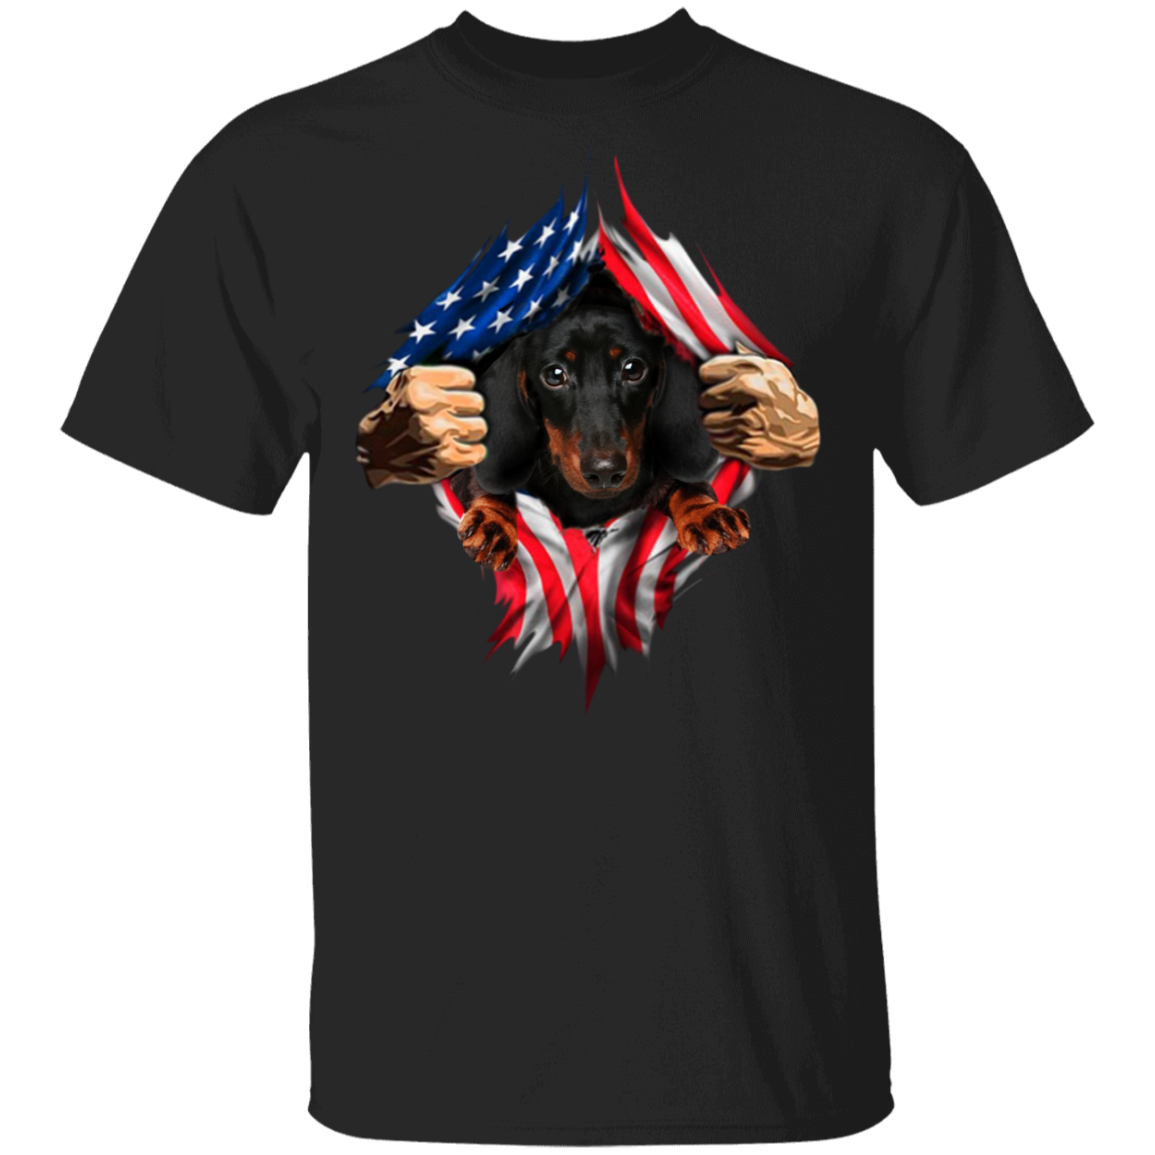 Dachshund Heartbeat Inside American Flag T-Shirt American Pride 4th Of July Shirts Old Navy